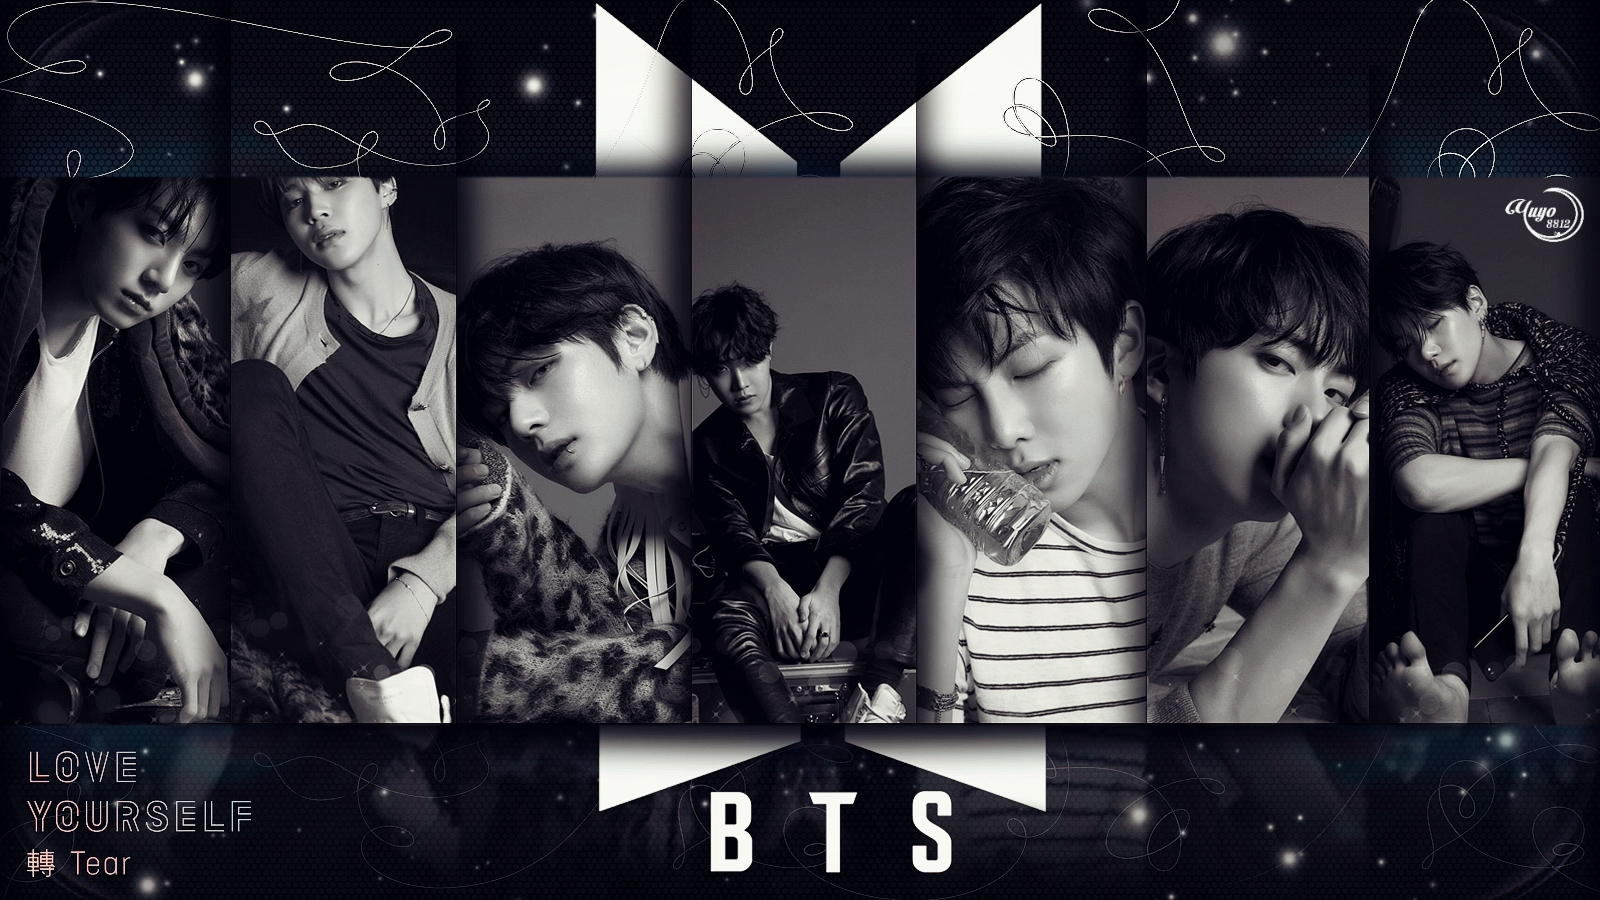 BTS FAKE Liebe #WALLPAPER